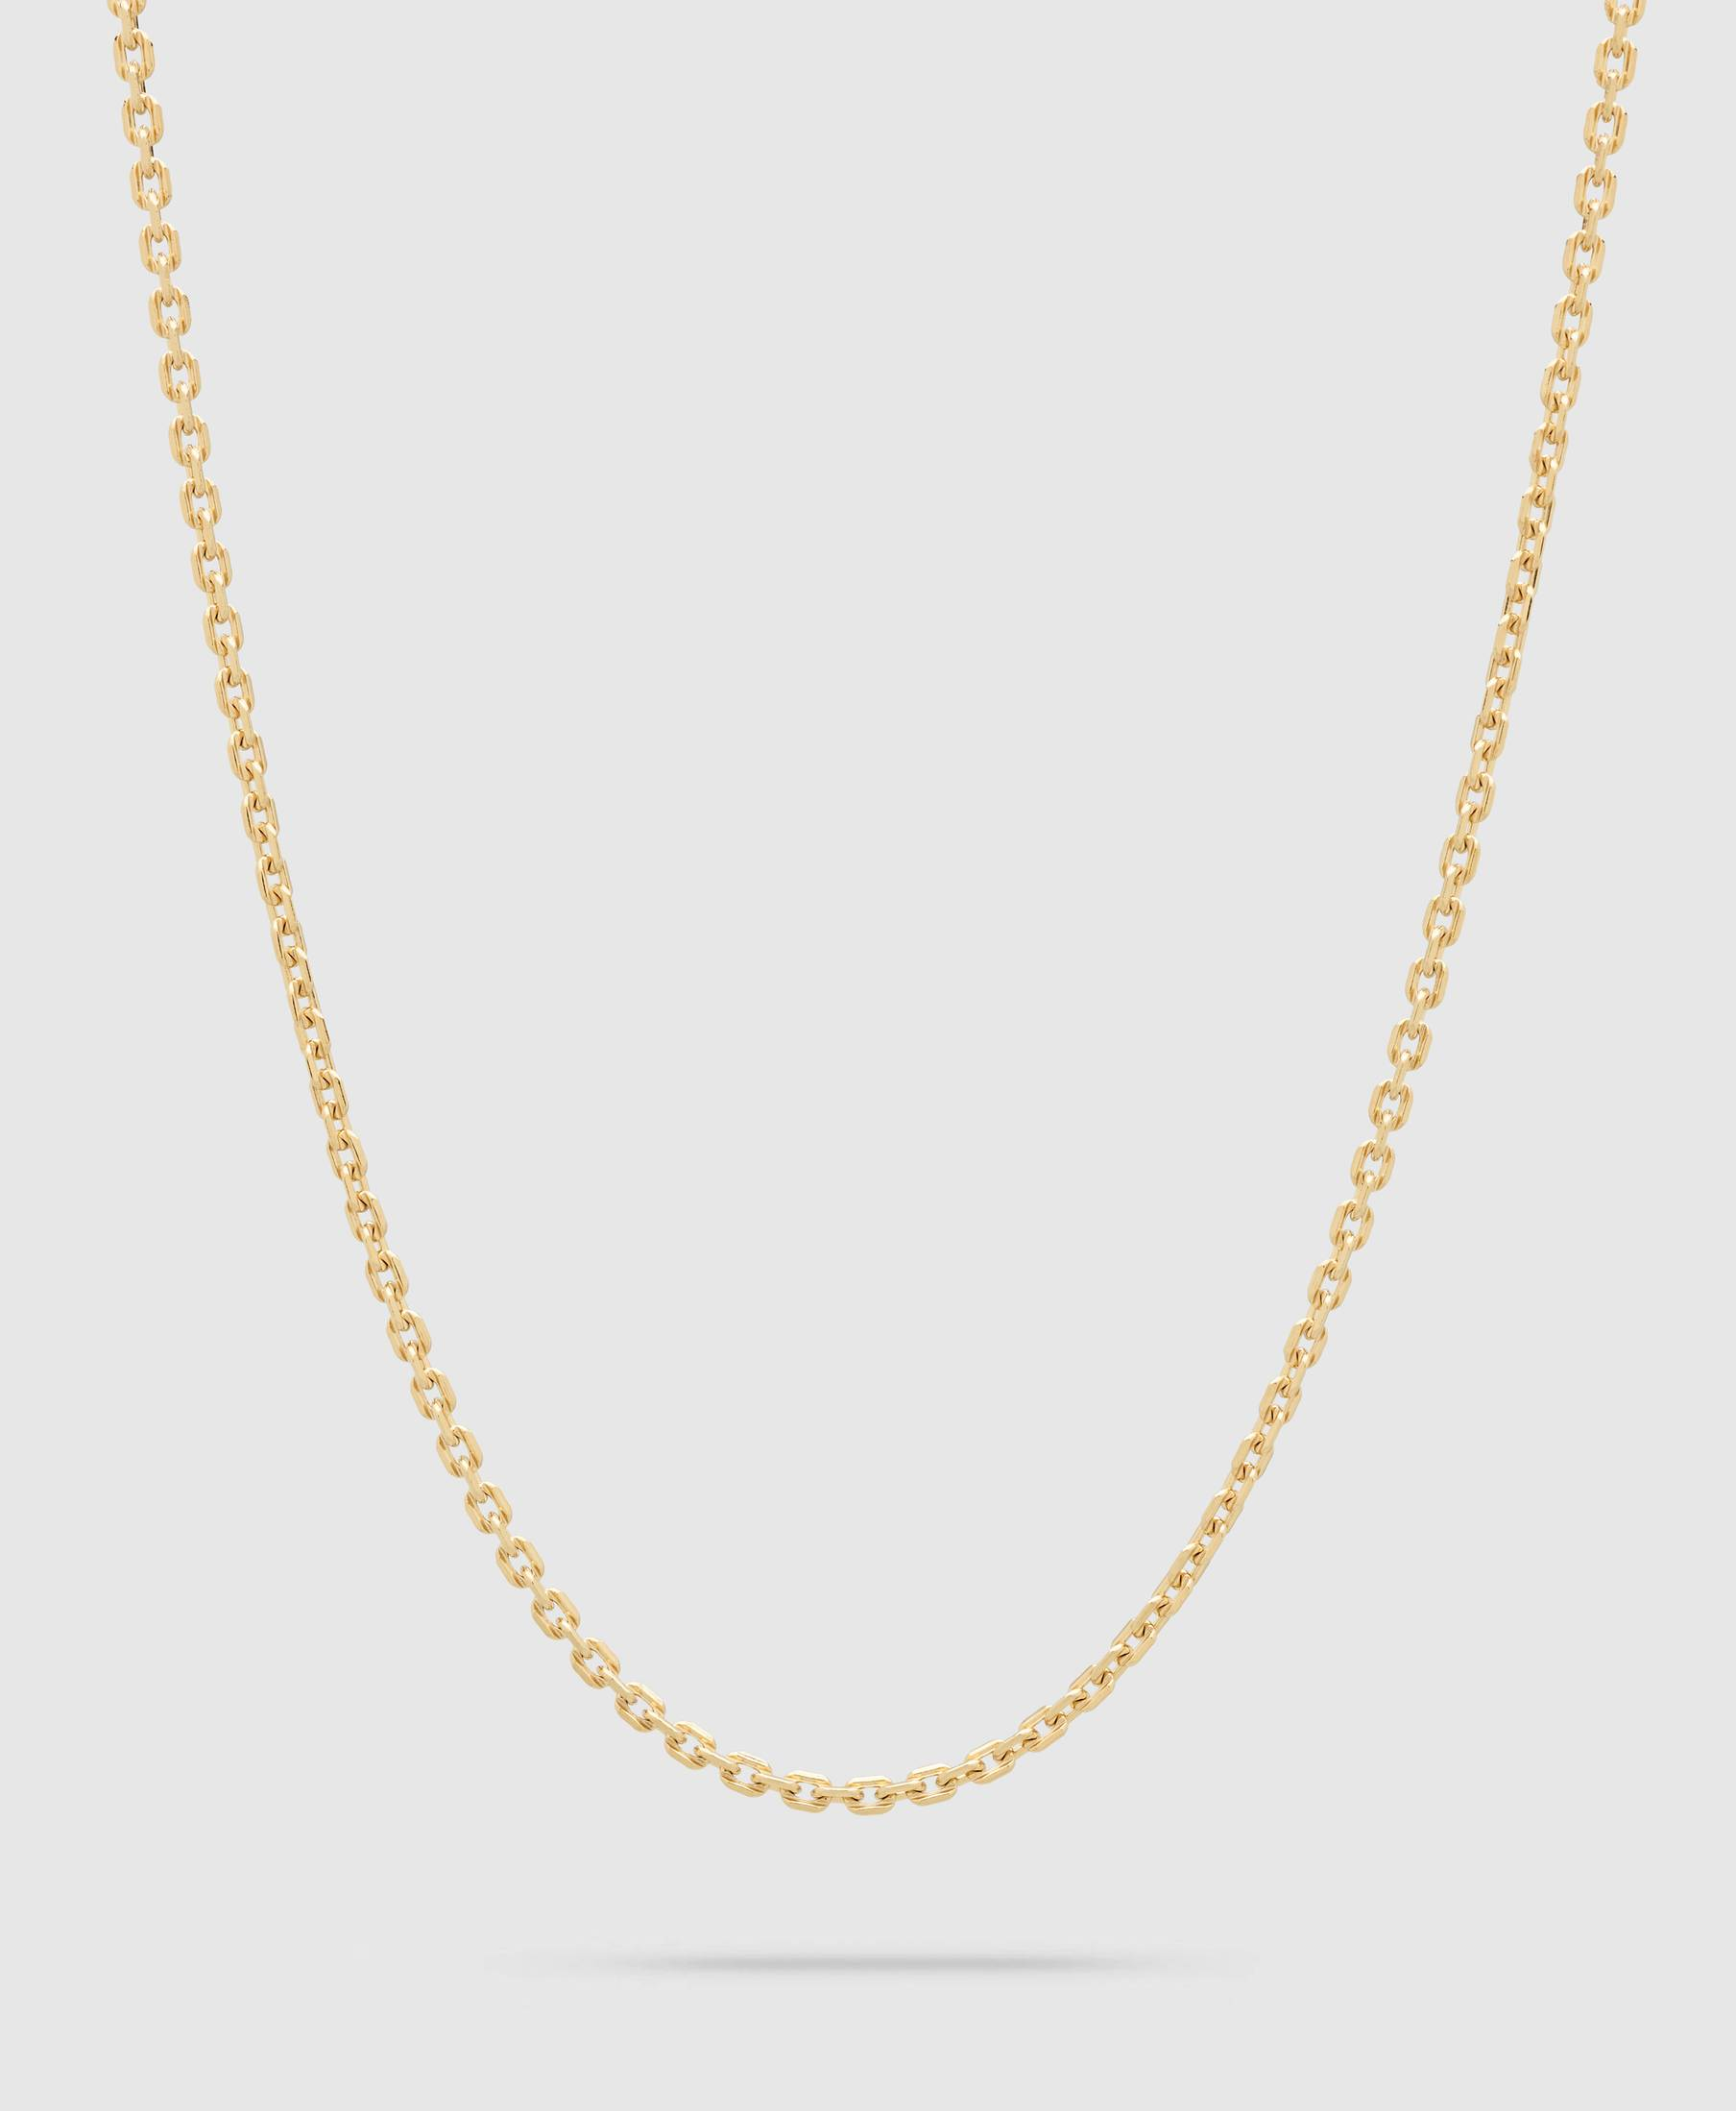 Anker Chain Gold